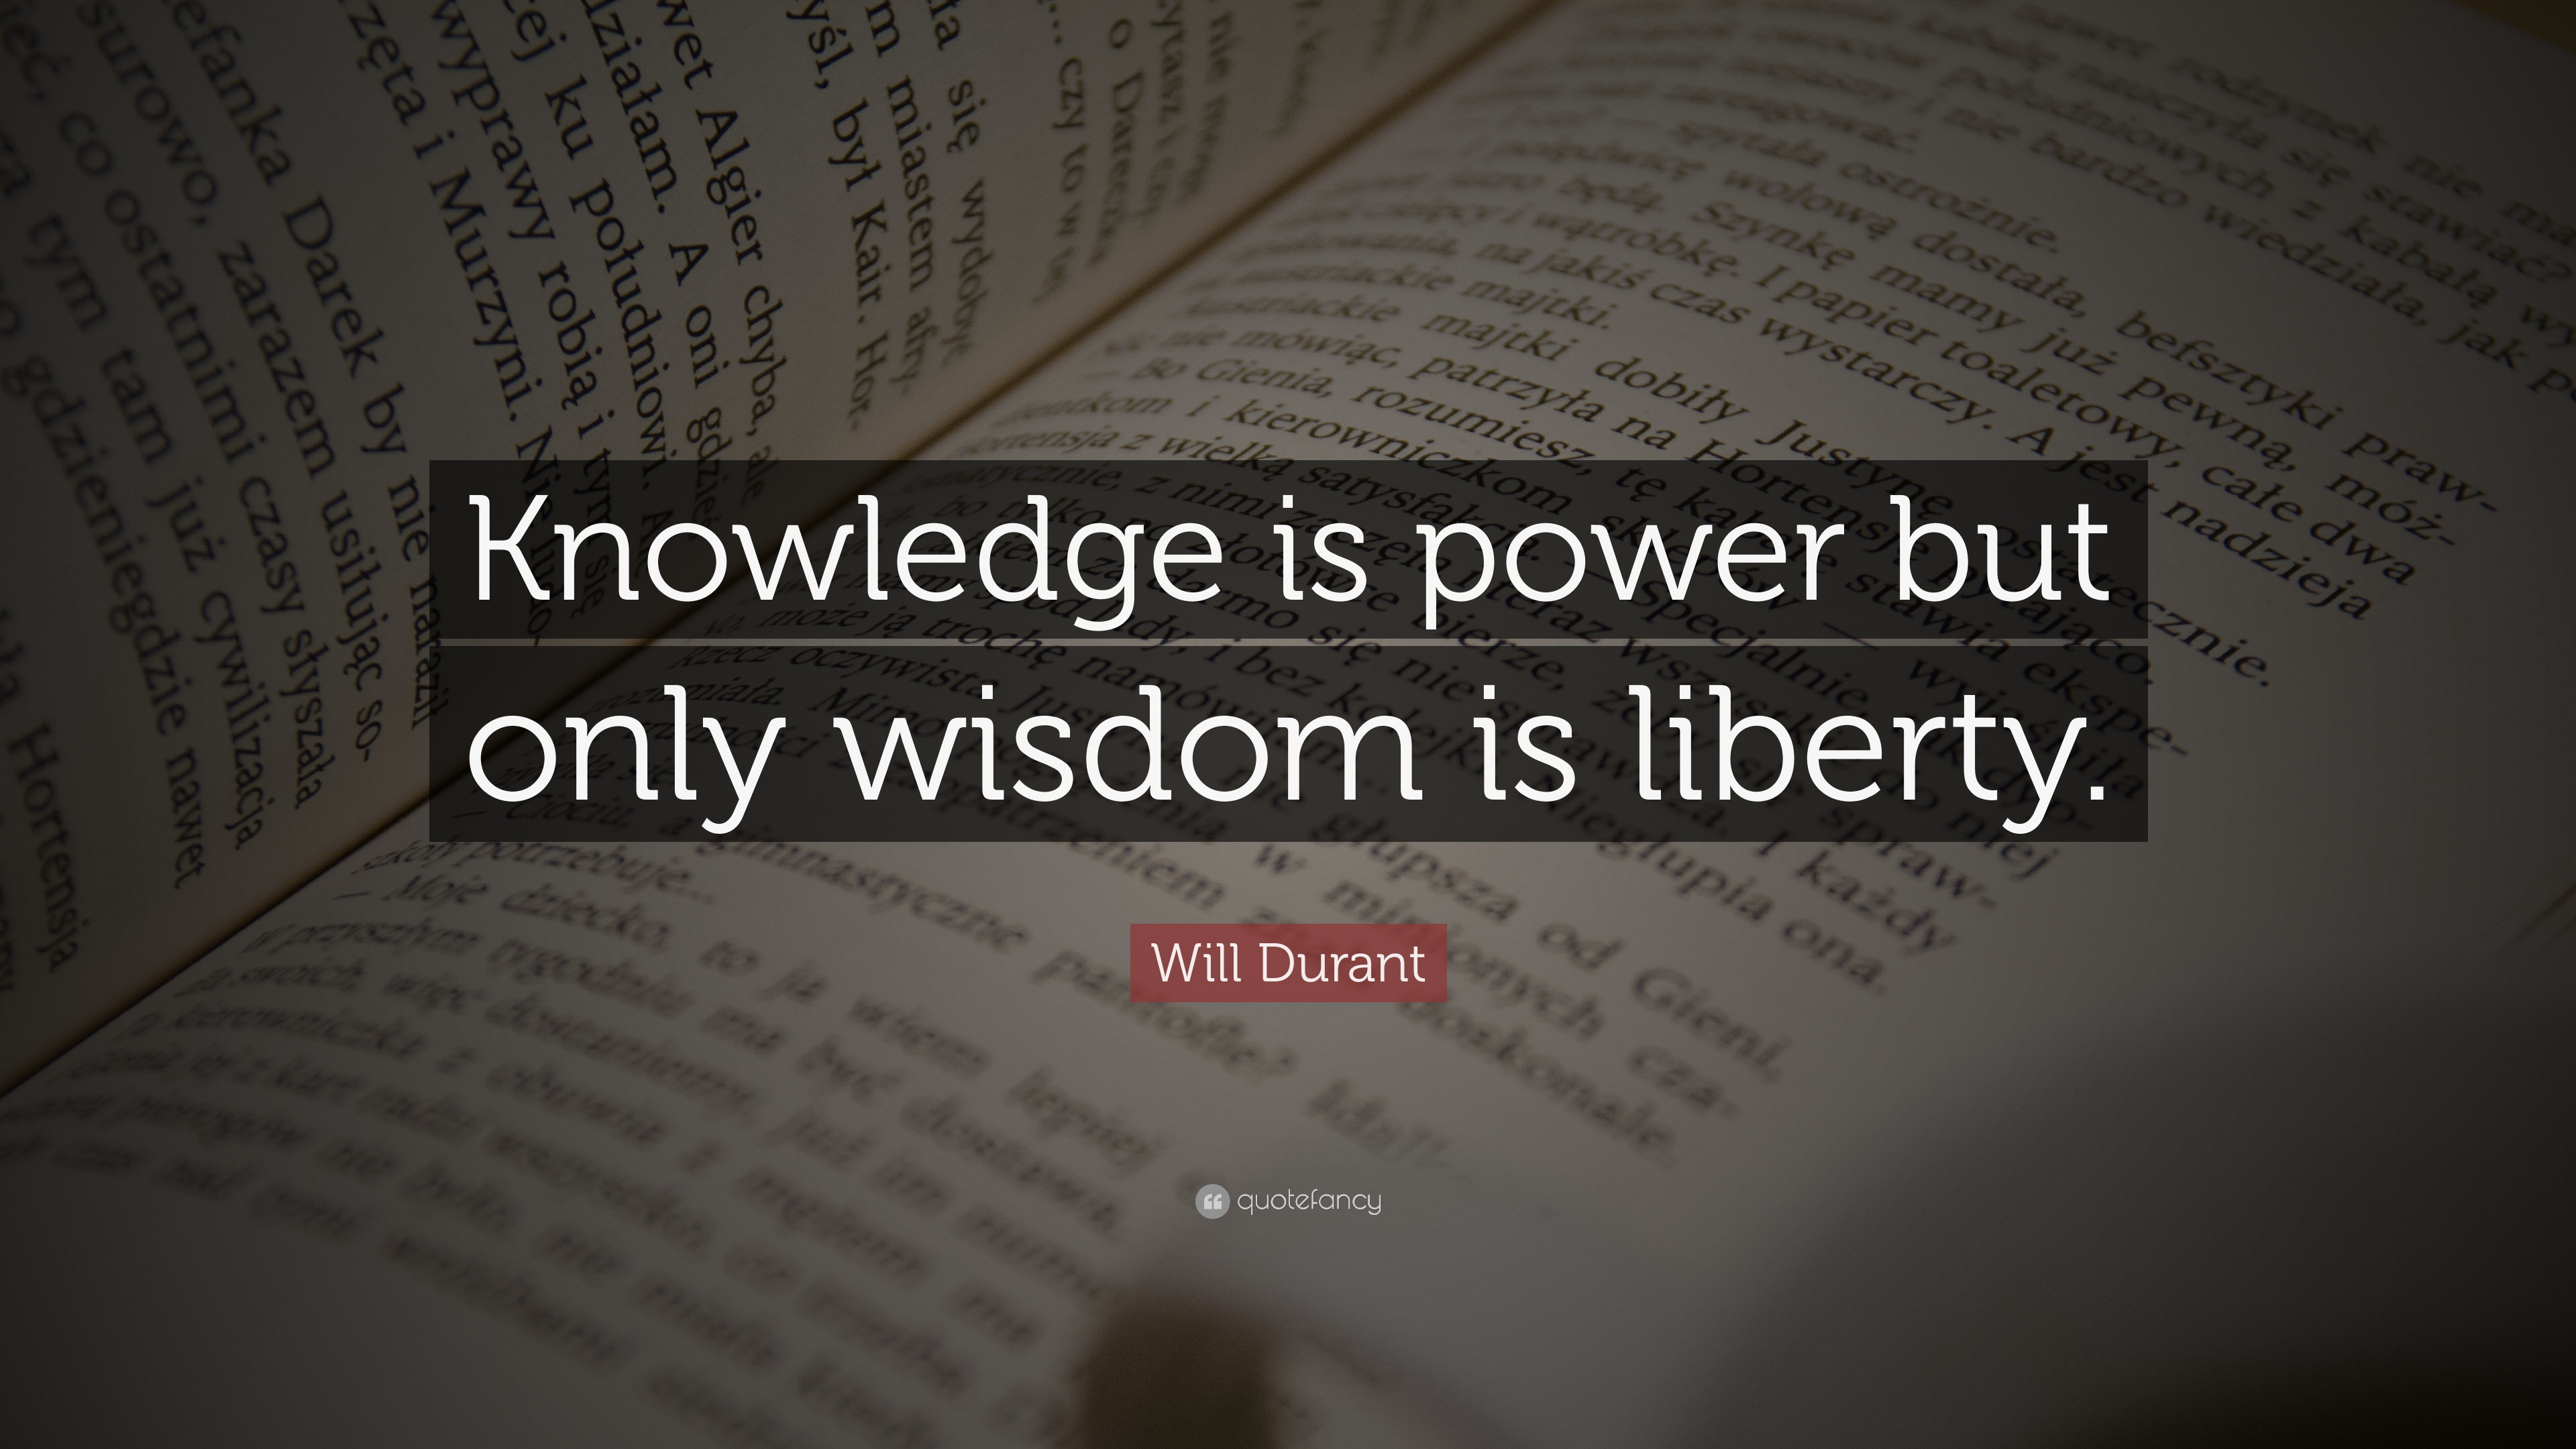 Beautiful Will Durant Quote: U201cKnowledge Is Power But Only Wisdom Is Liberty.u201d